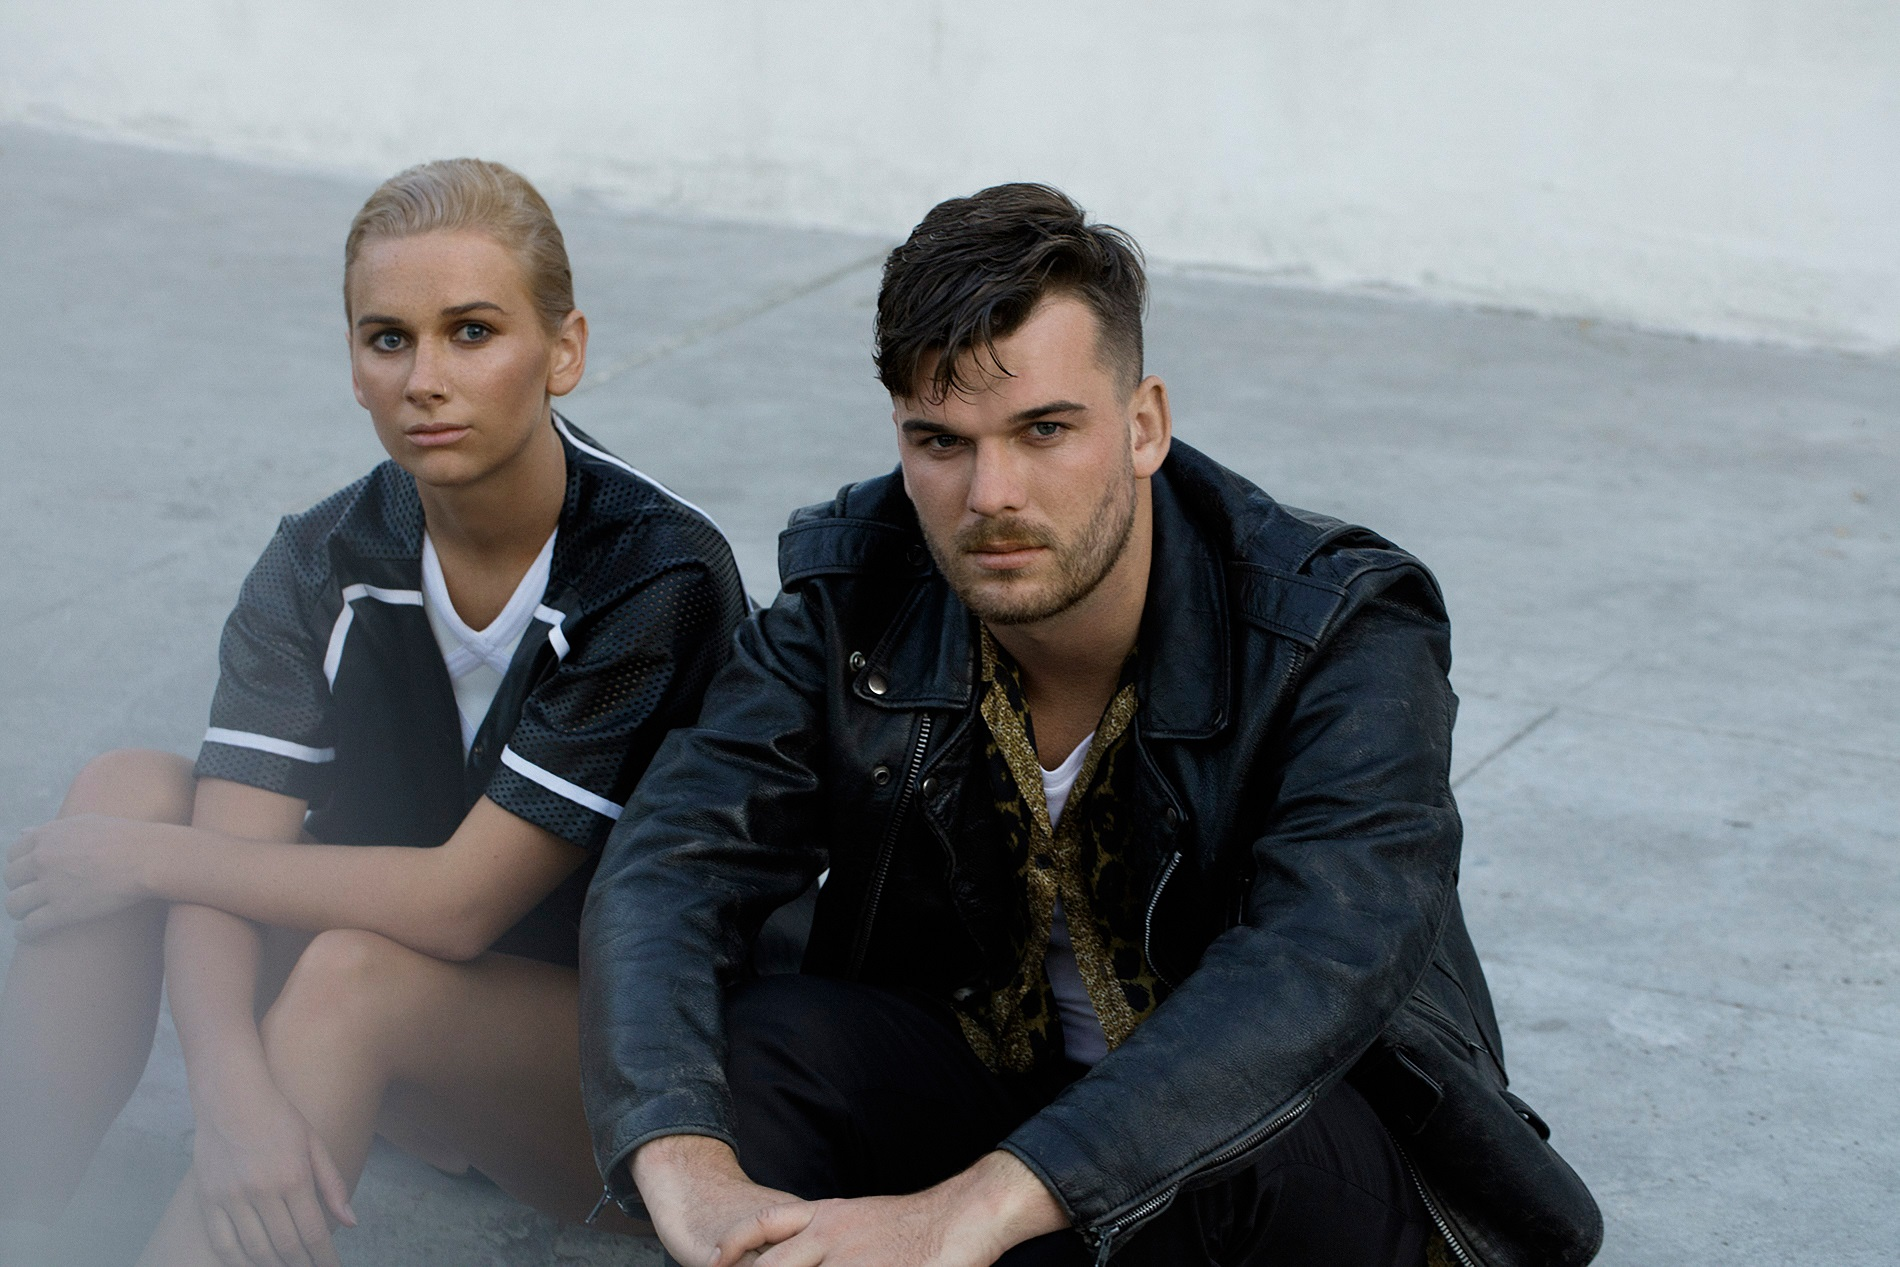 Broods is Georgia and Caleb Nott